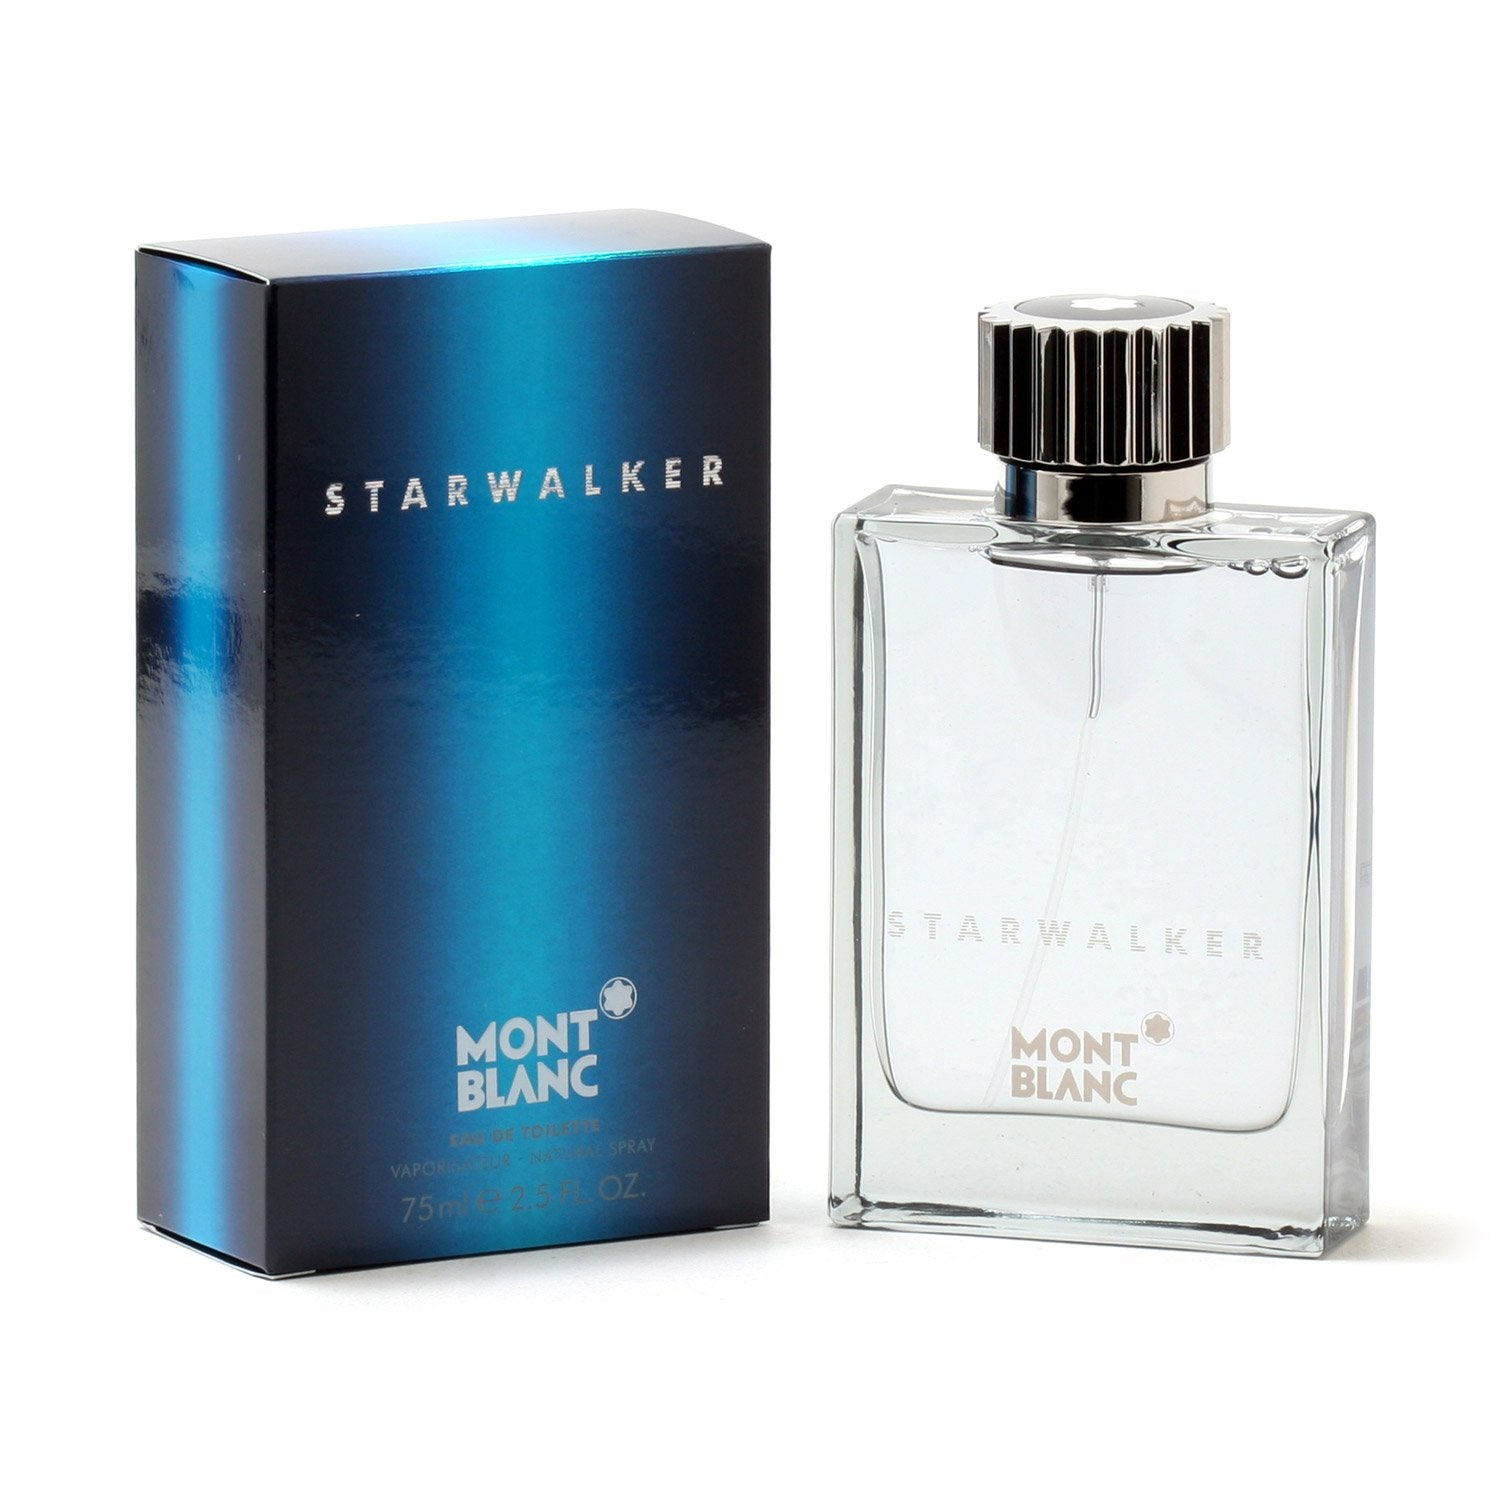 Cologne - MONT BLANC STARWALKER FOR MEN - EAU DE TOILETTE SPRAY, 2.5 OZ